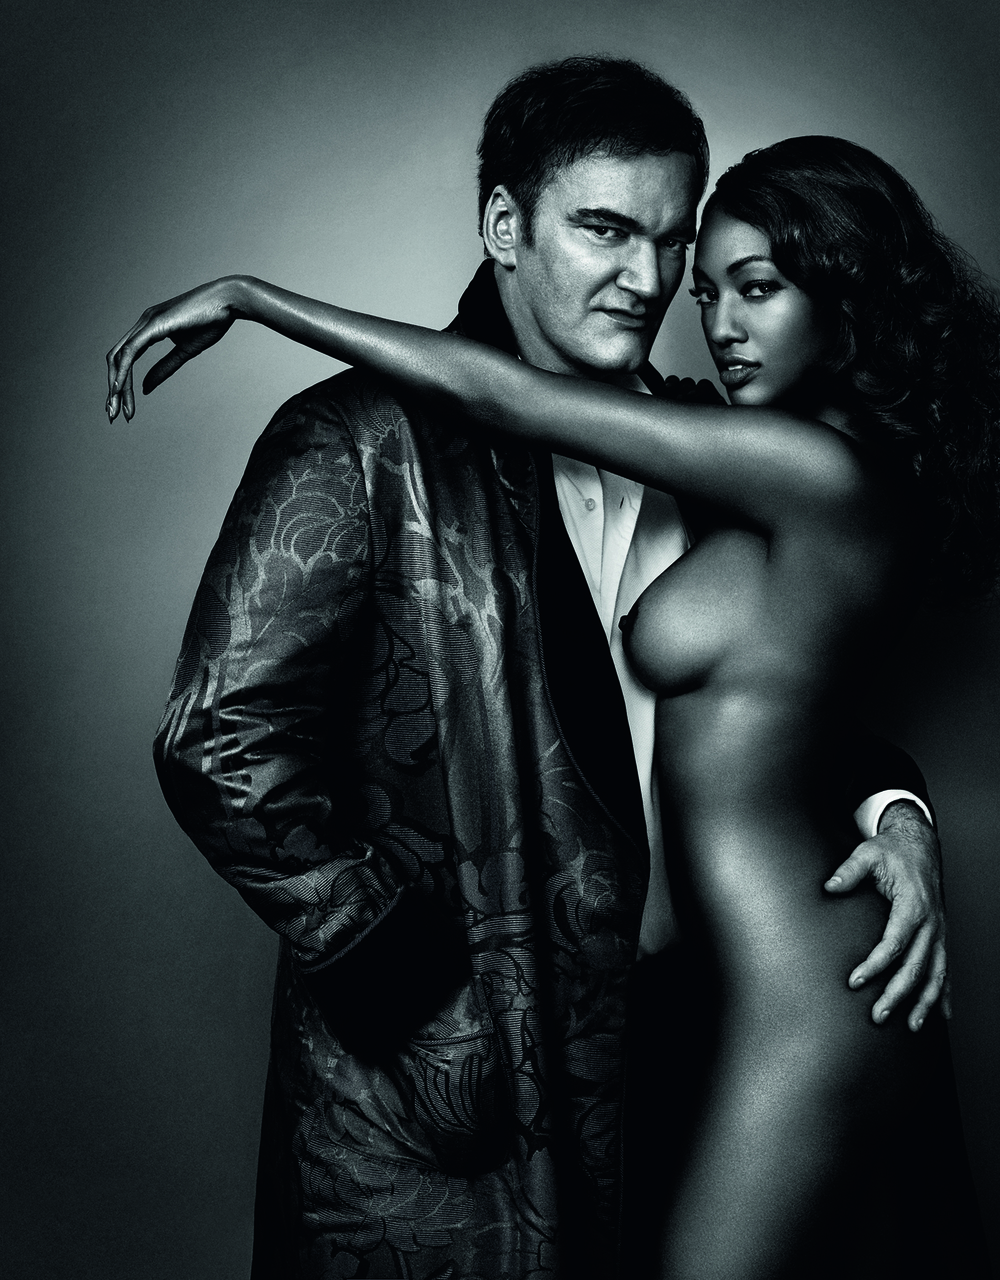 Quentin Tarantino and Nichole Galicia Photo © 2016 Marc Hom. All rights reserved.